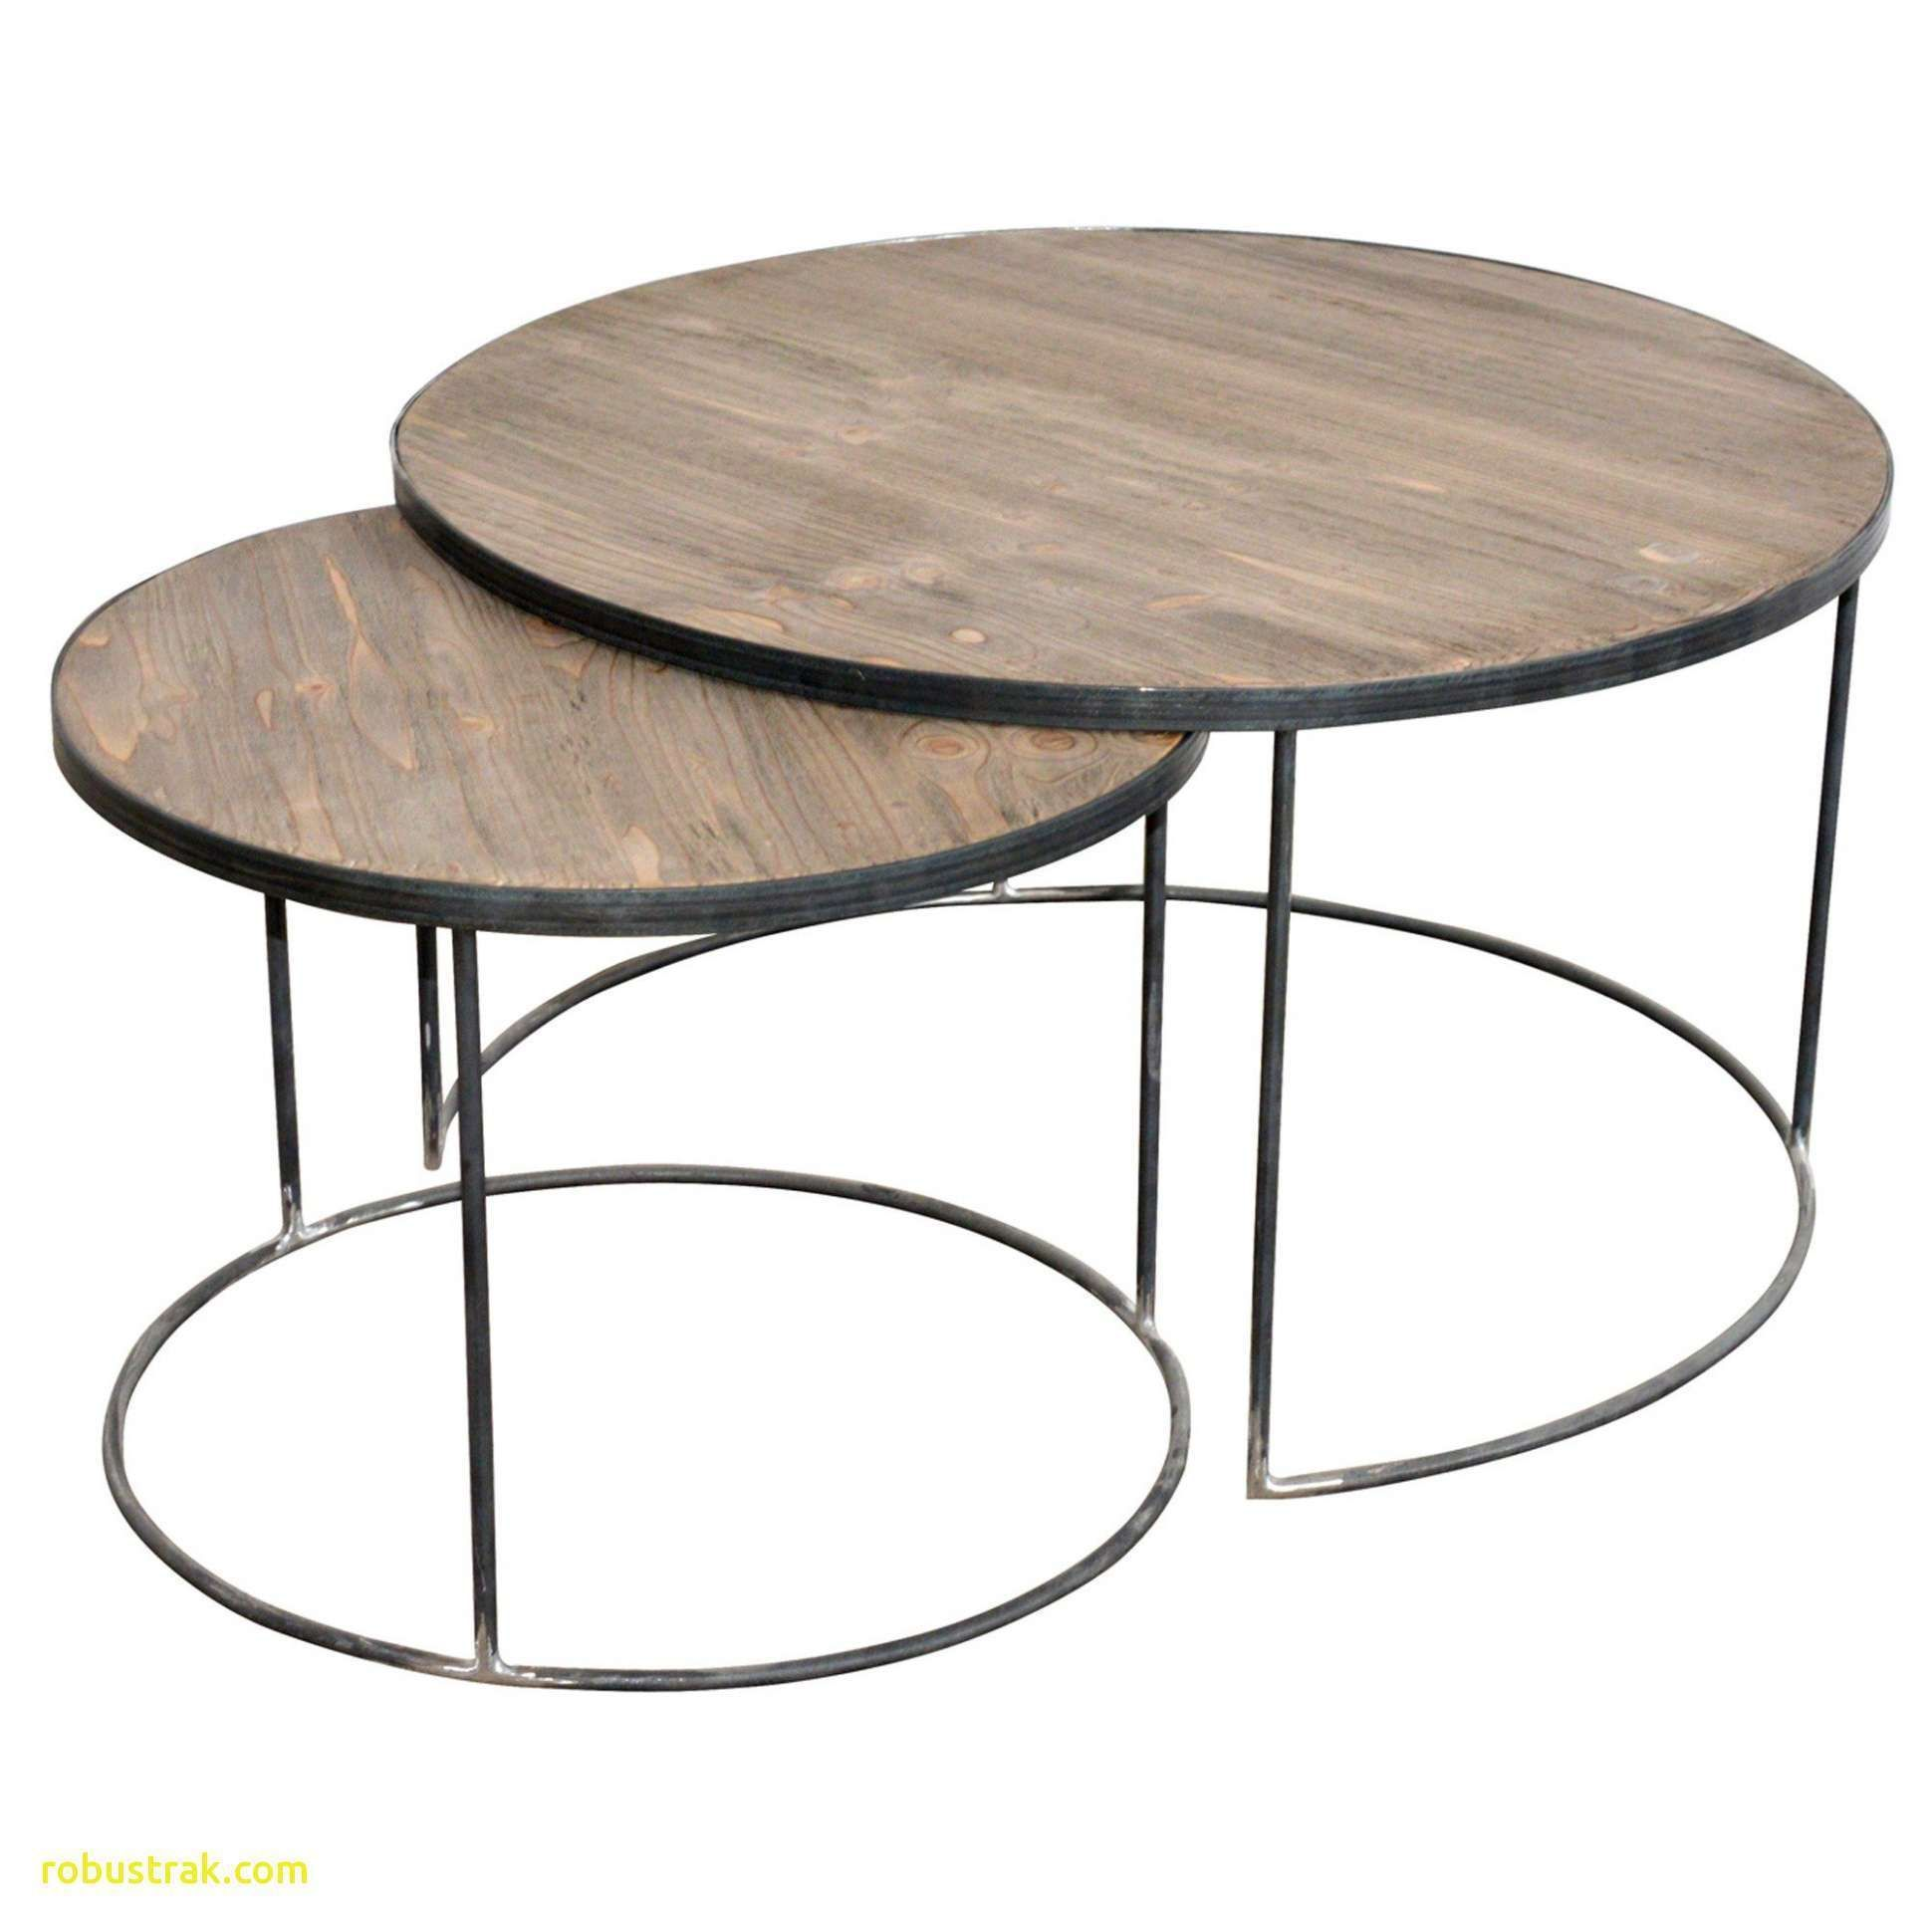 Best Of Diy Round Coffee Table Homedecoration Homedecorations Homedecorationideas Homedec Iron Coffee Table Dark Wood Coffee Table Nesting Coffee Tables [ 1940 x 1940 Pixel ]